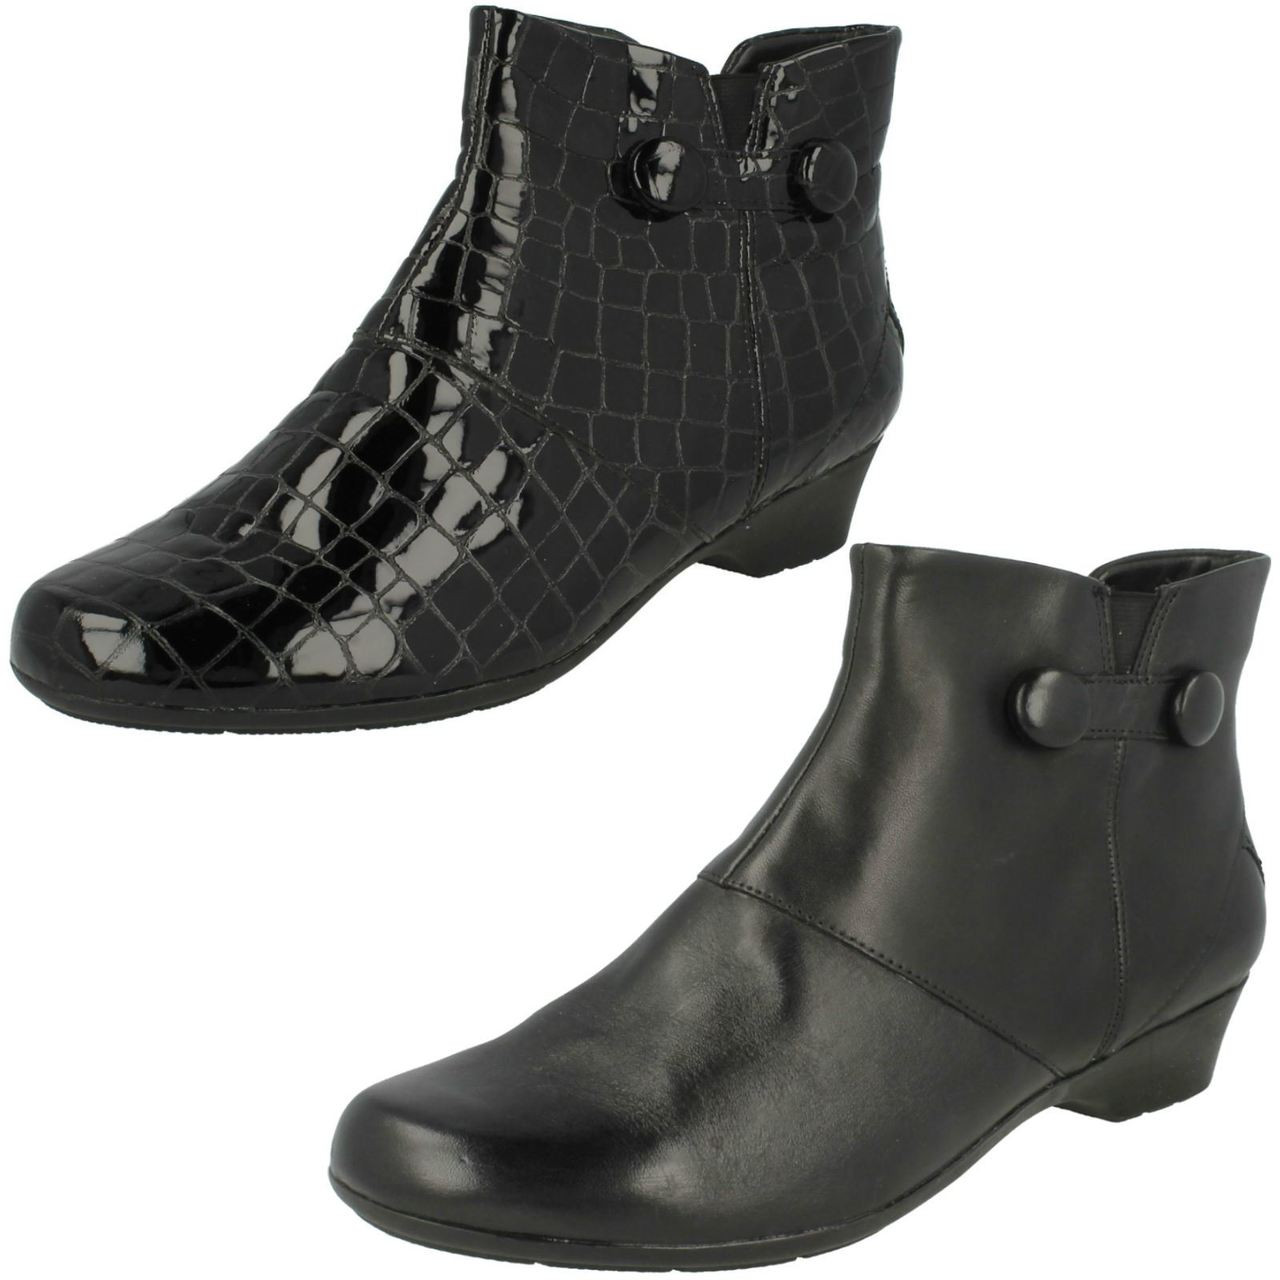 By Clarks Ankle Boots Merida Ella